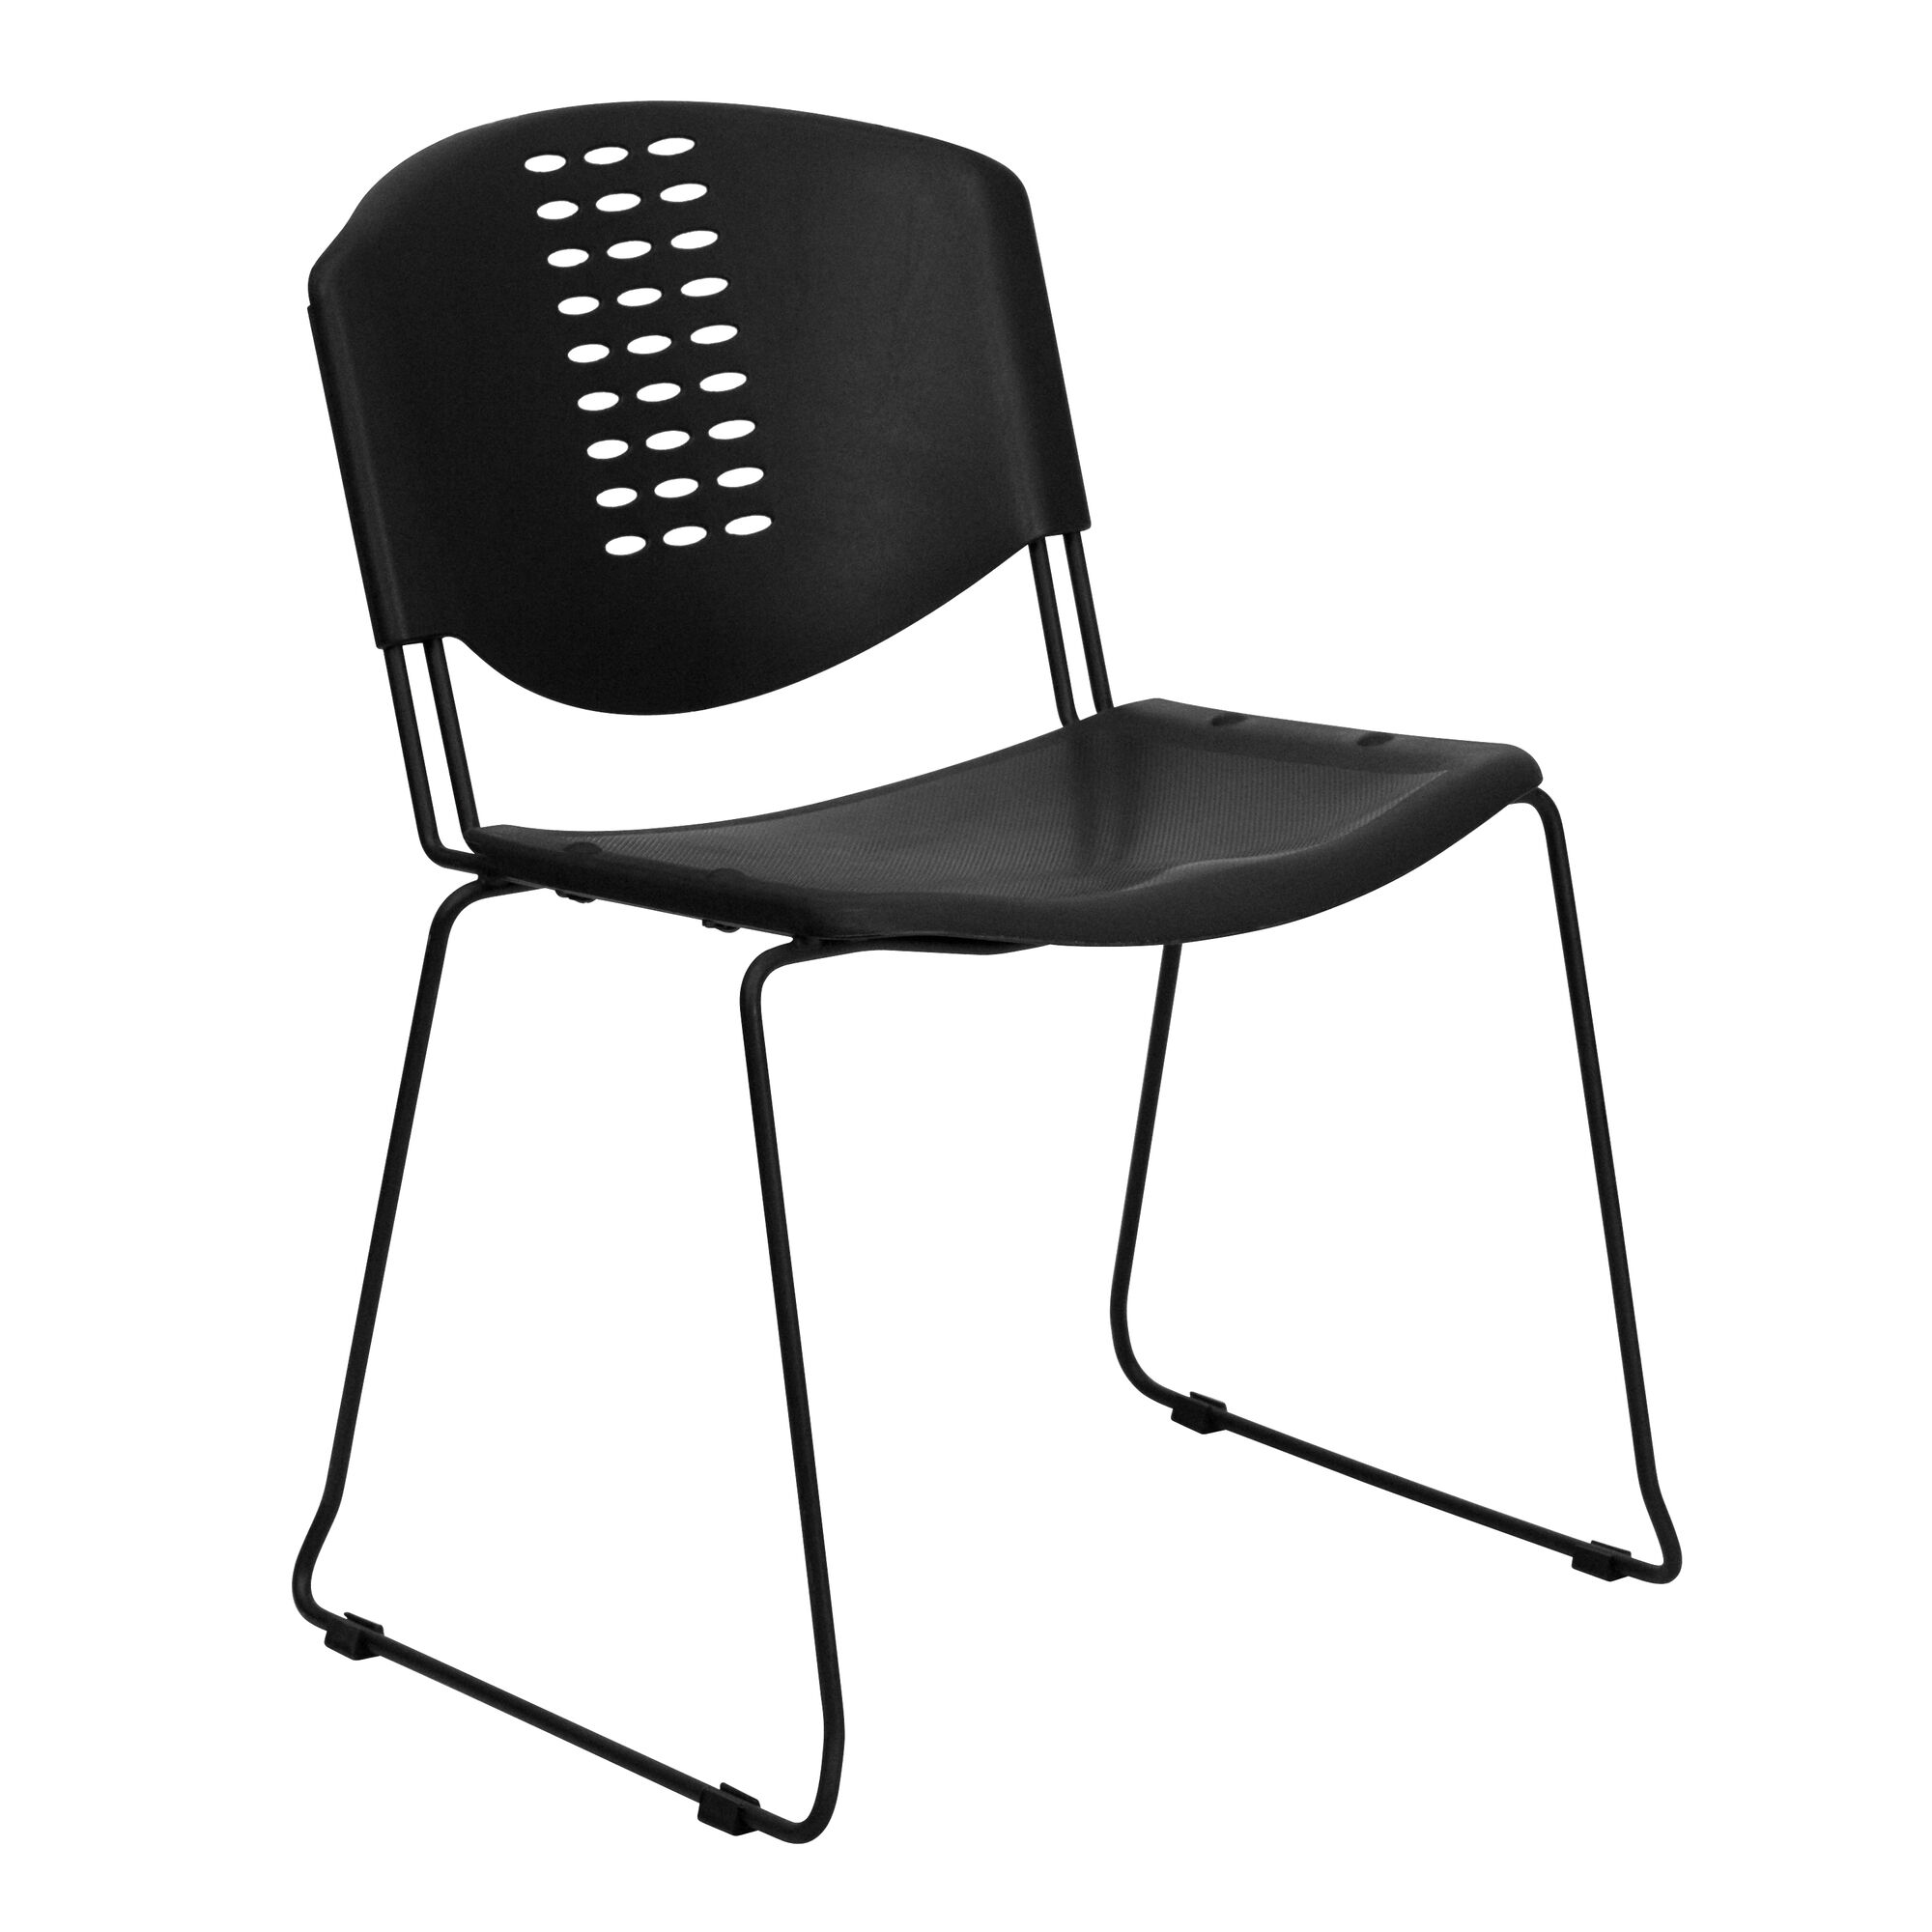 Enjoyable Hercules Series 400 Lb Capacity Black Plastic Stack Chair With Black Frame Alphanode Cool Chair Designs And Ideas Alphanodeonline